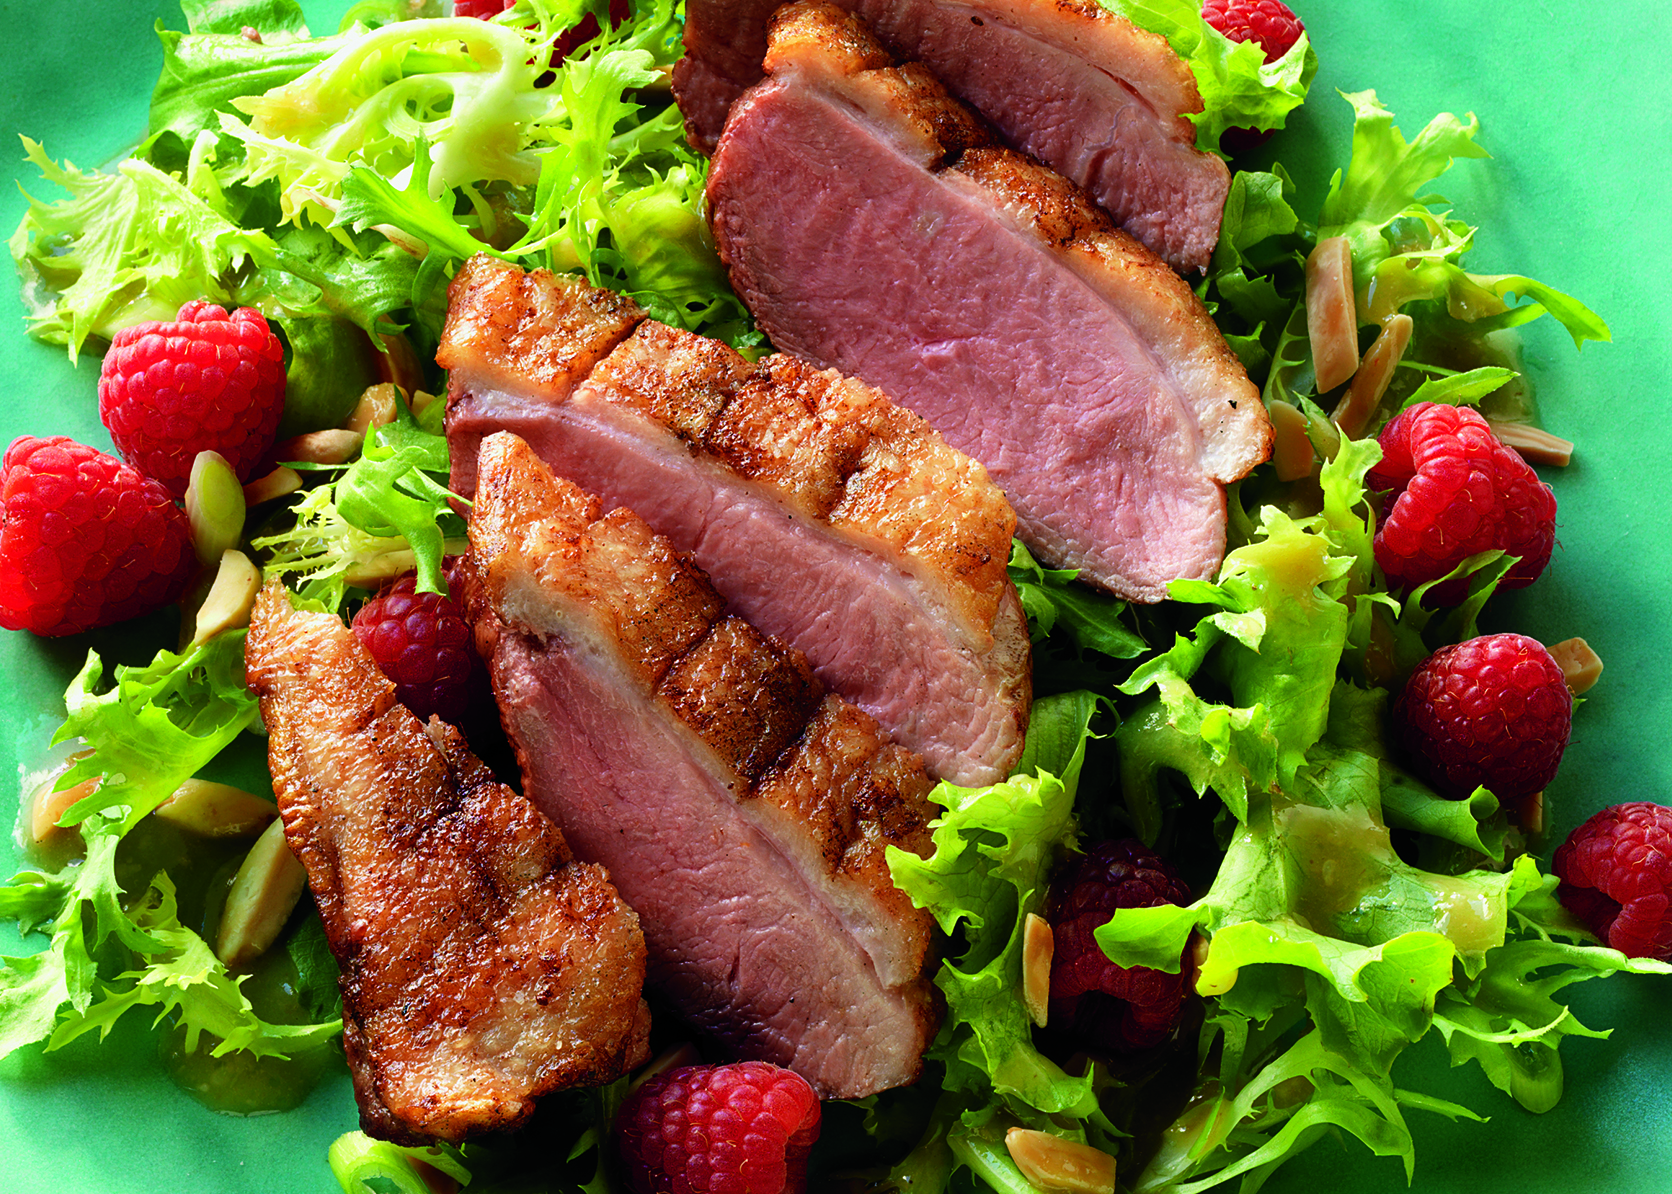 Grilled Duck Breast Salad with Hoisin Dressing